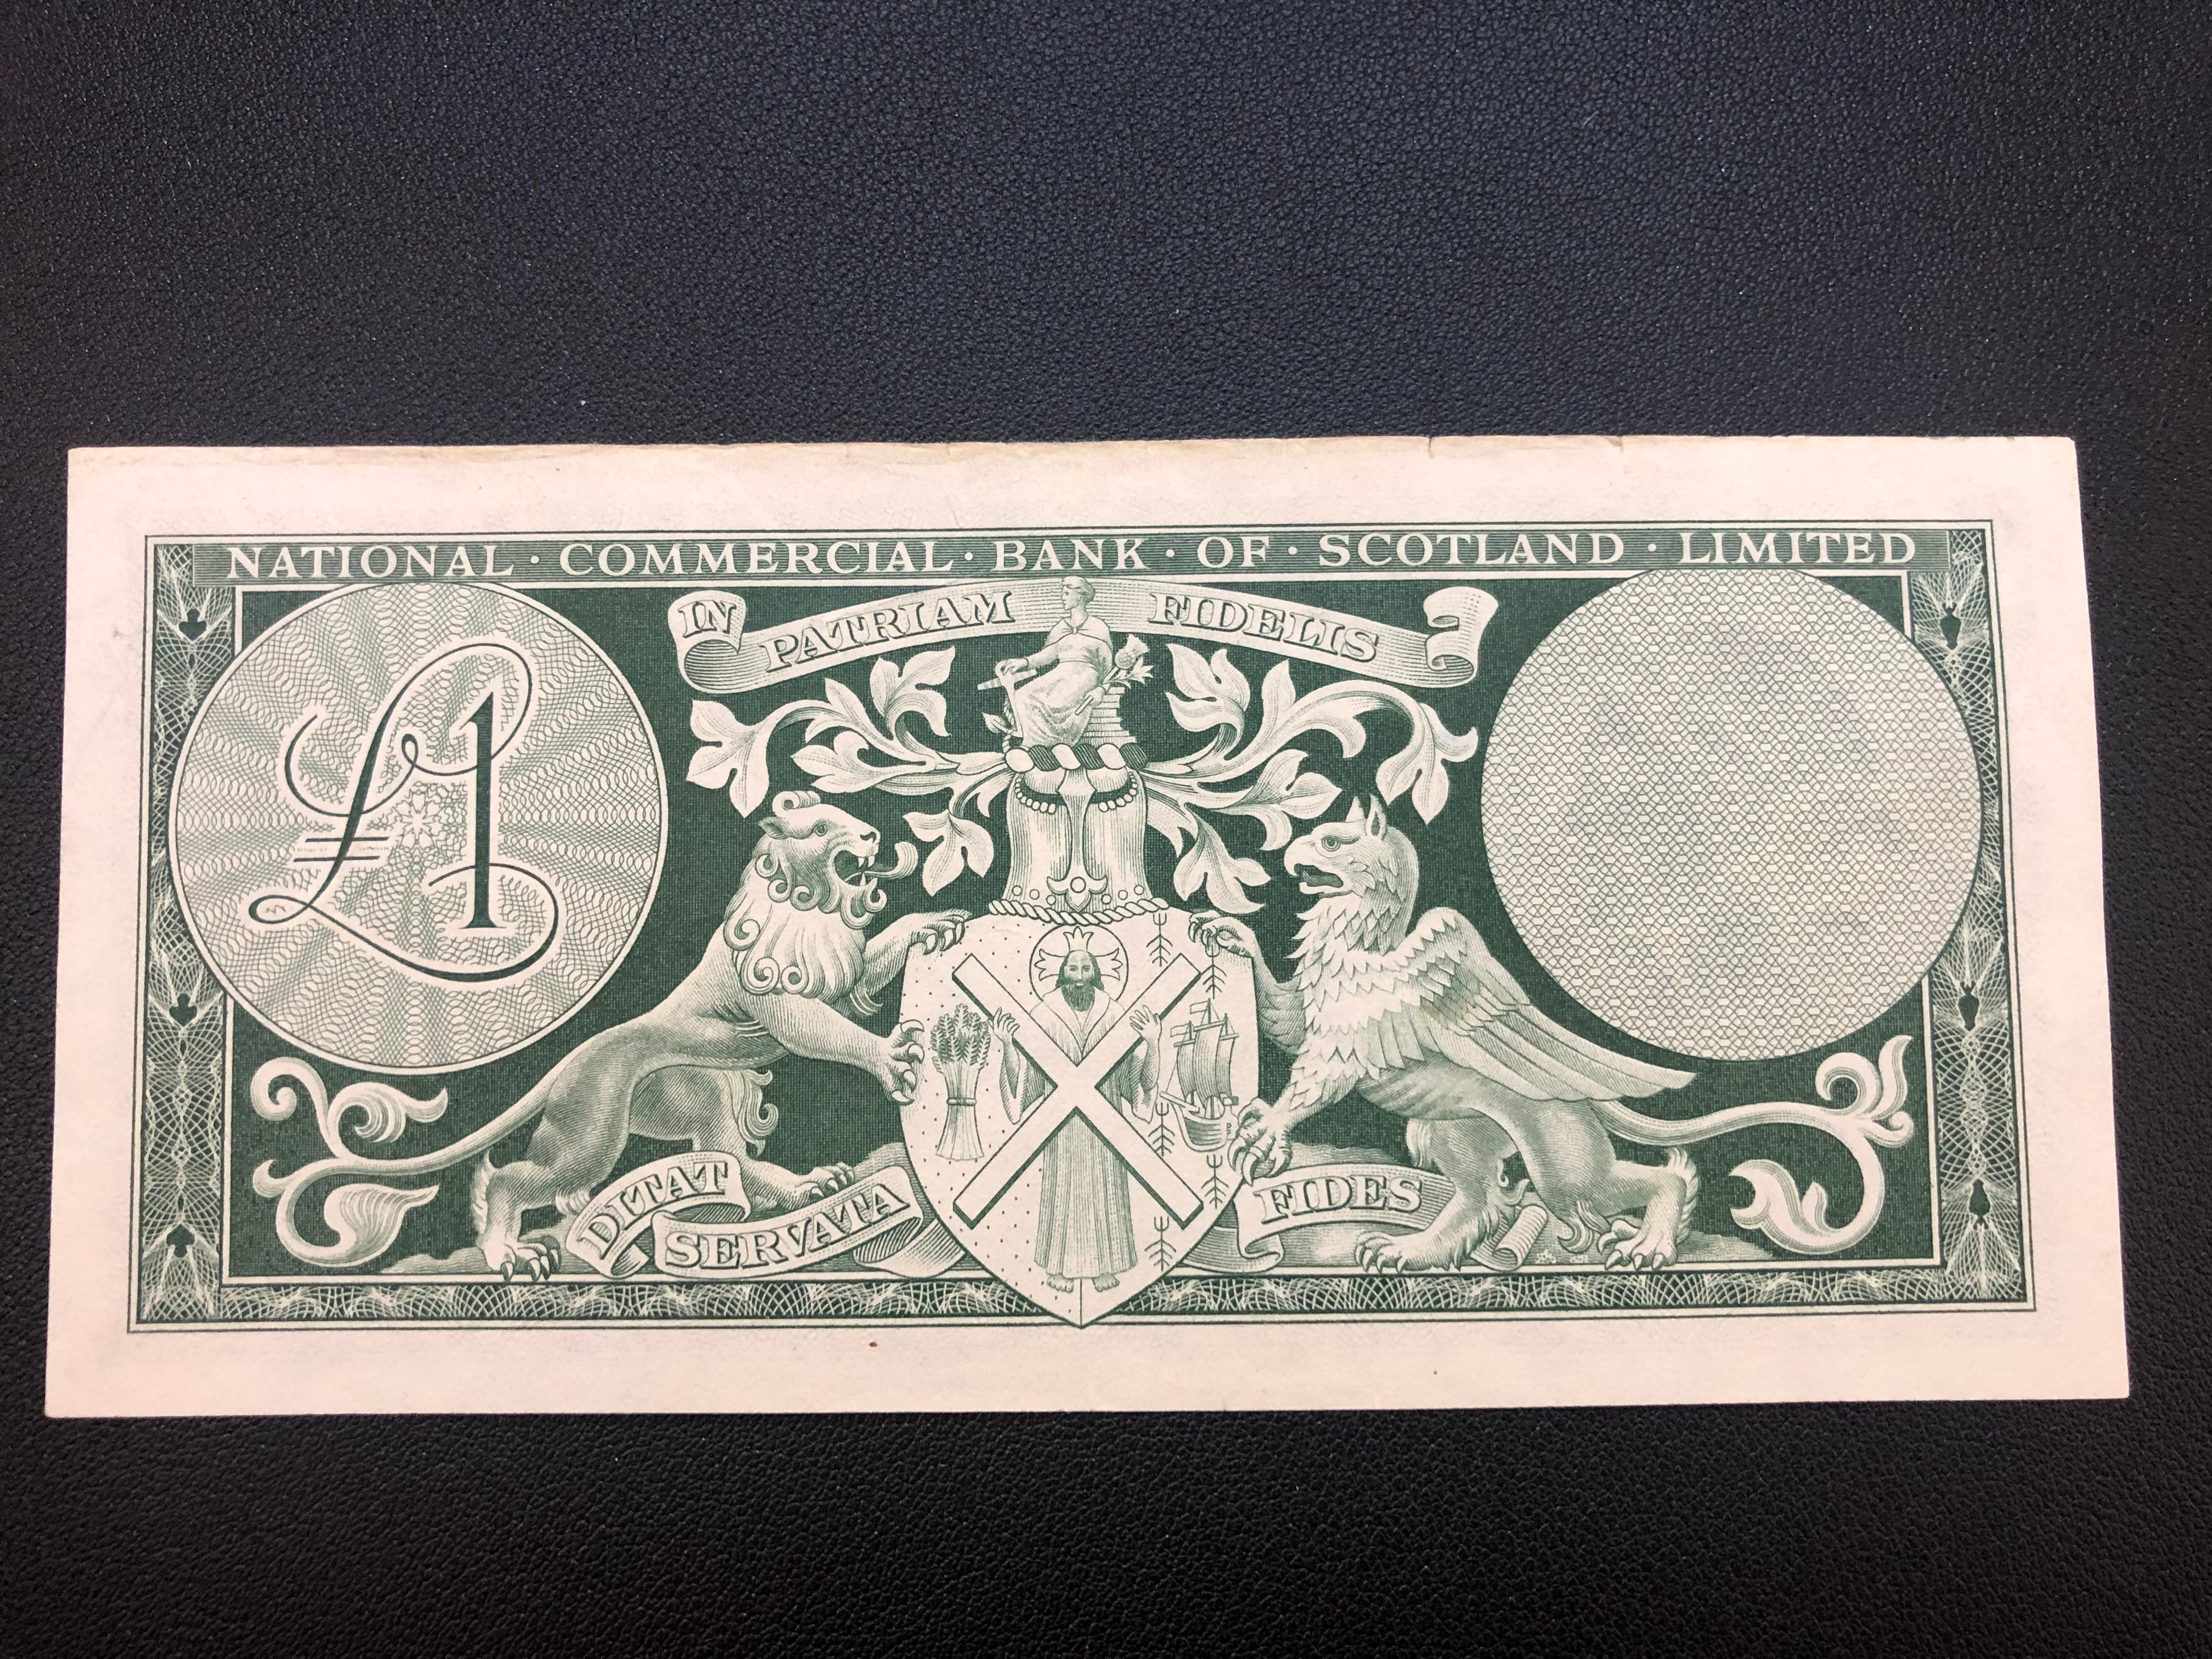 Scotland  1 Pound 1963 269a National Commercial Bank AU with top nick .jpg